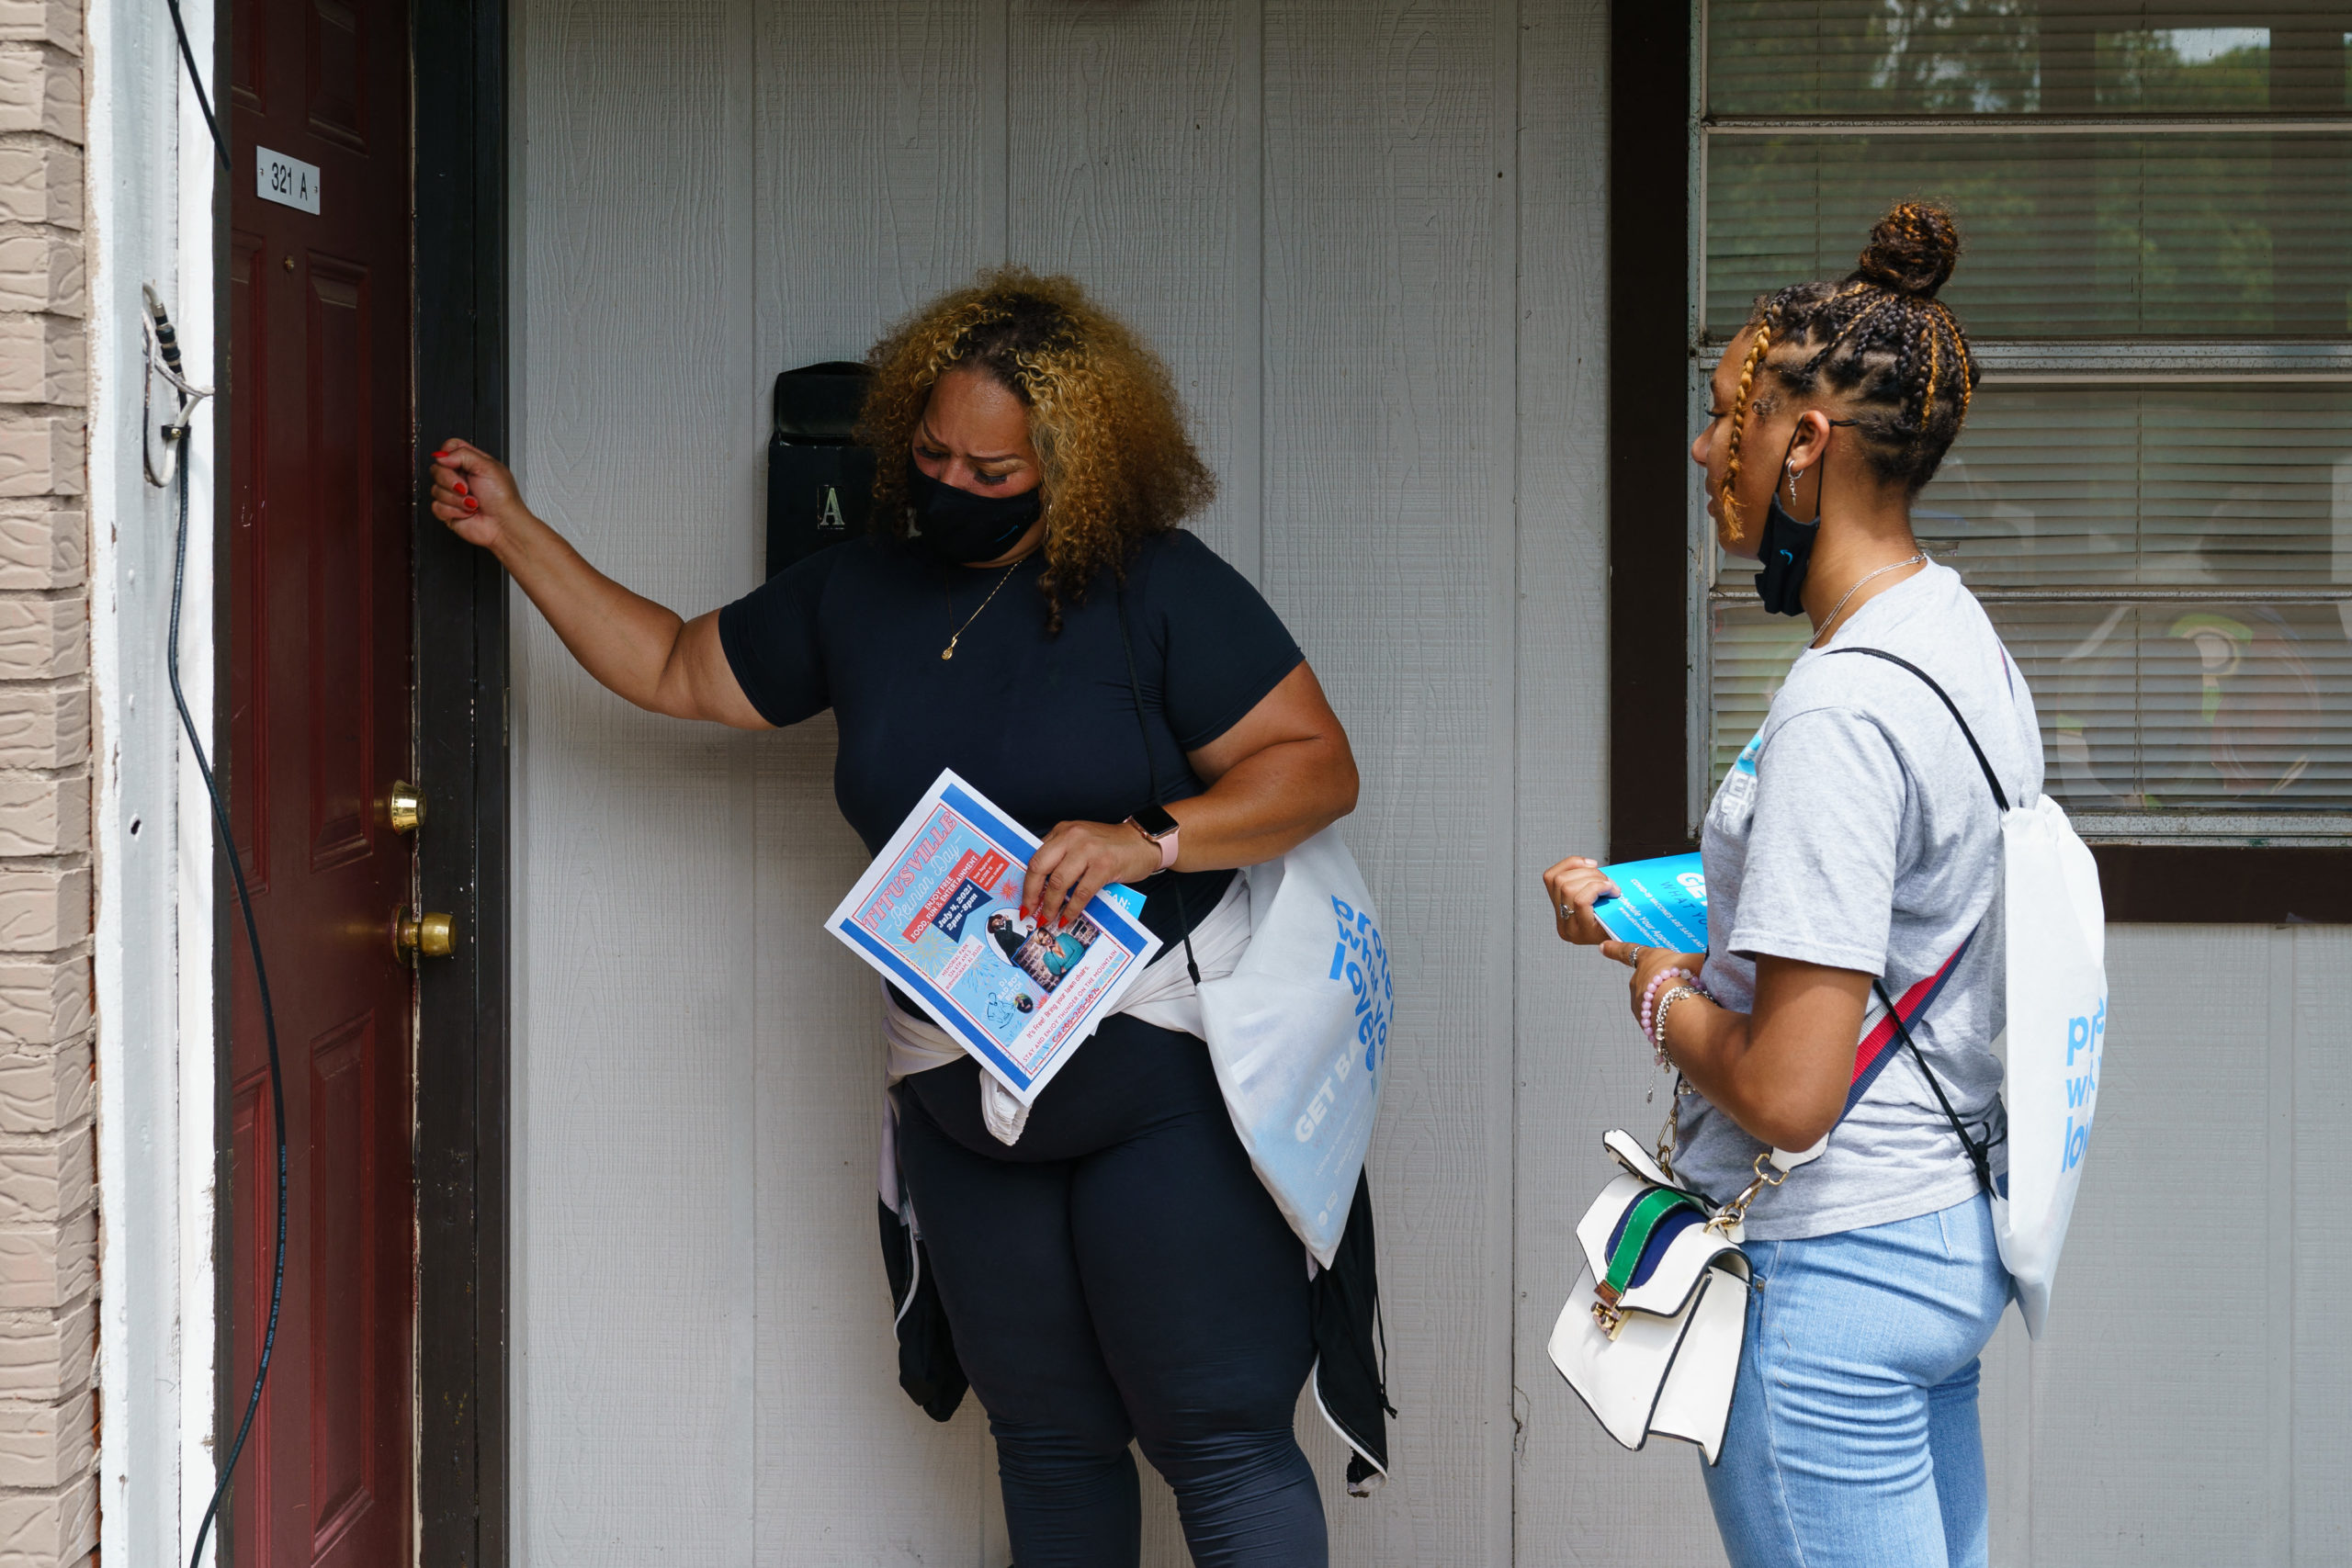 Volunteers and staffers knock on a door during an outreach effort to inform residents about an upcoming COVID-19 vaccination event, on June 30, 2021, in Birmingham, Alabama. (ELIJAH NOUVELAGE/AFP via Getty Images)